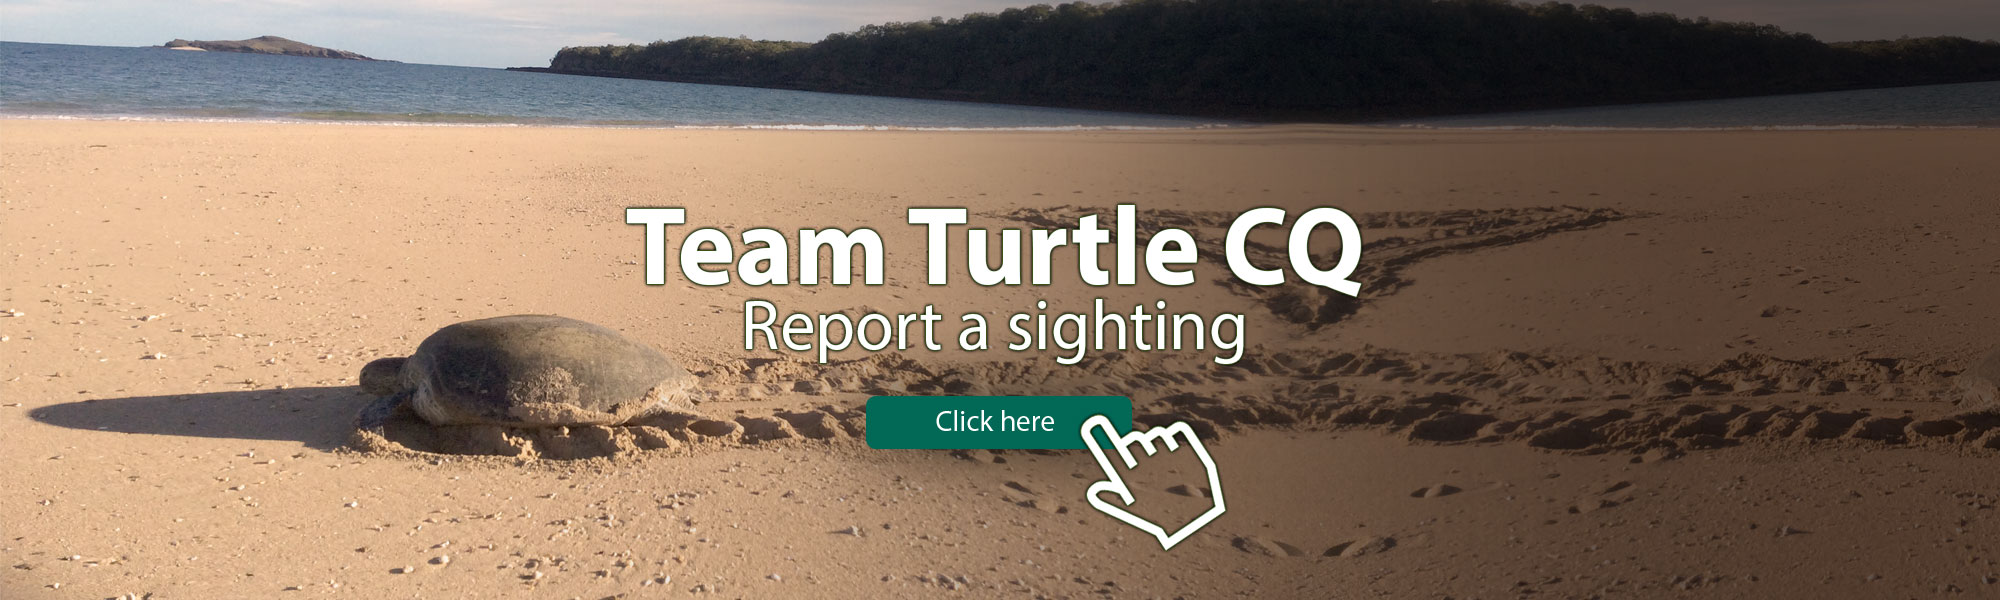 Turtle-Banner-Wide